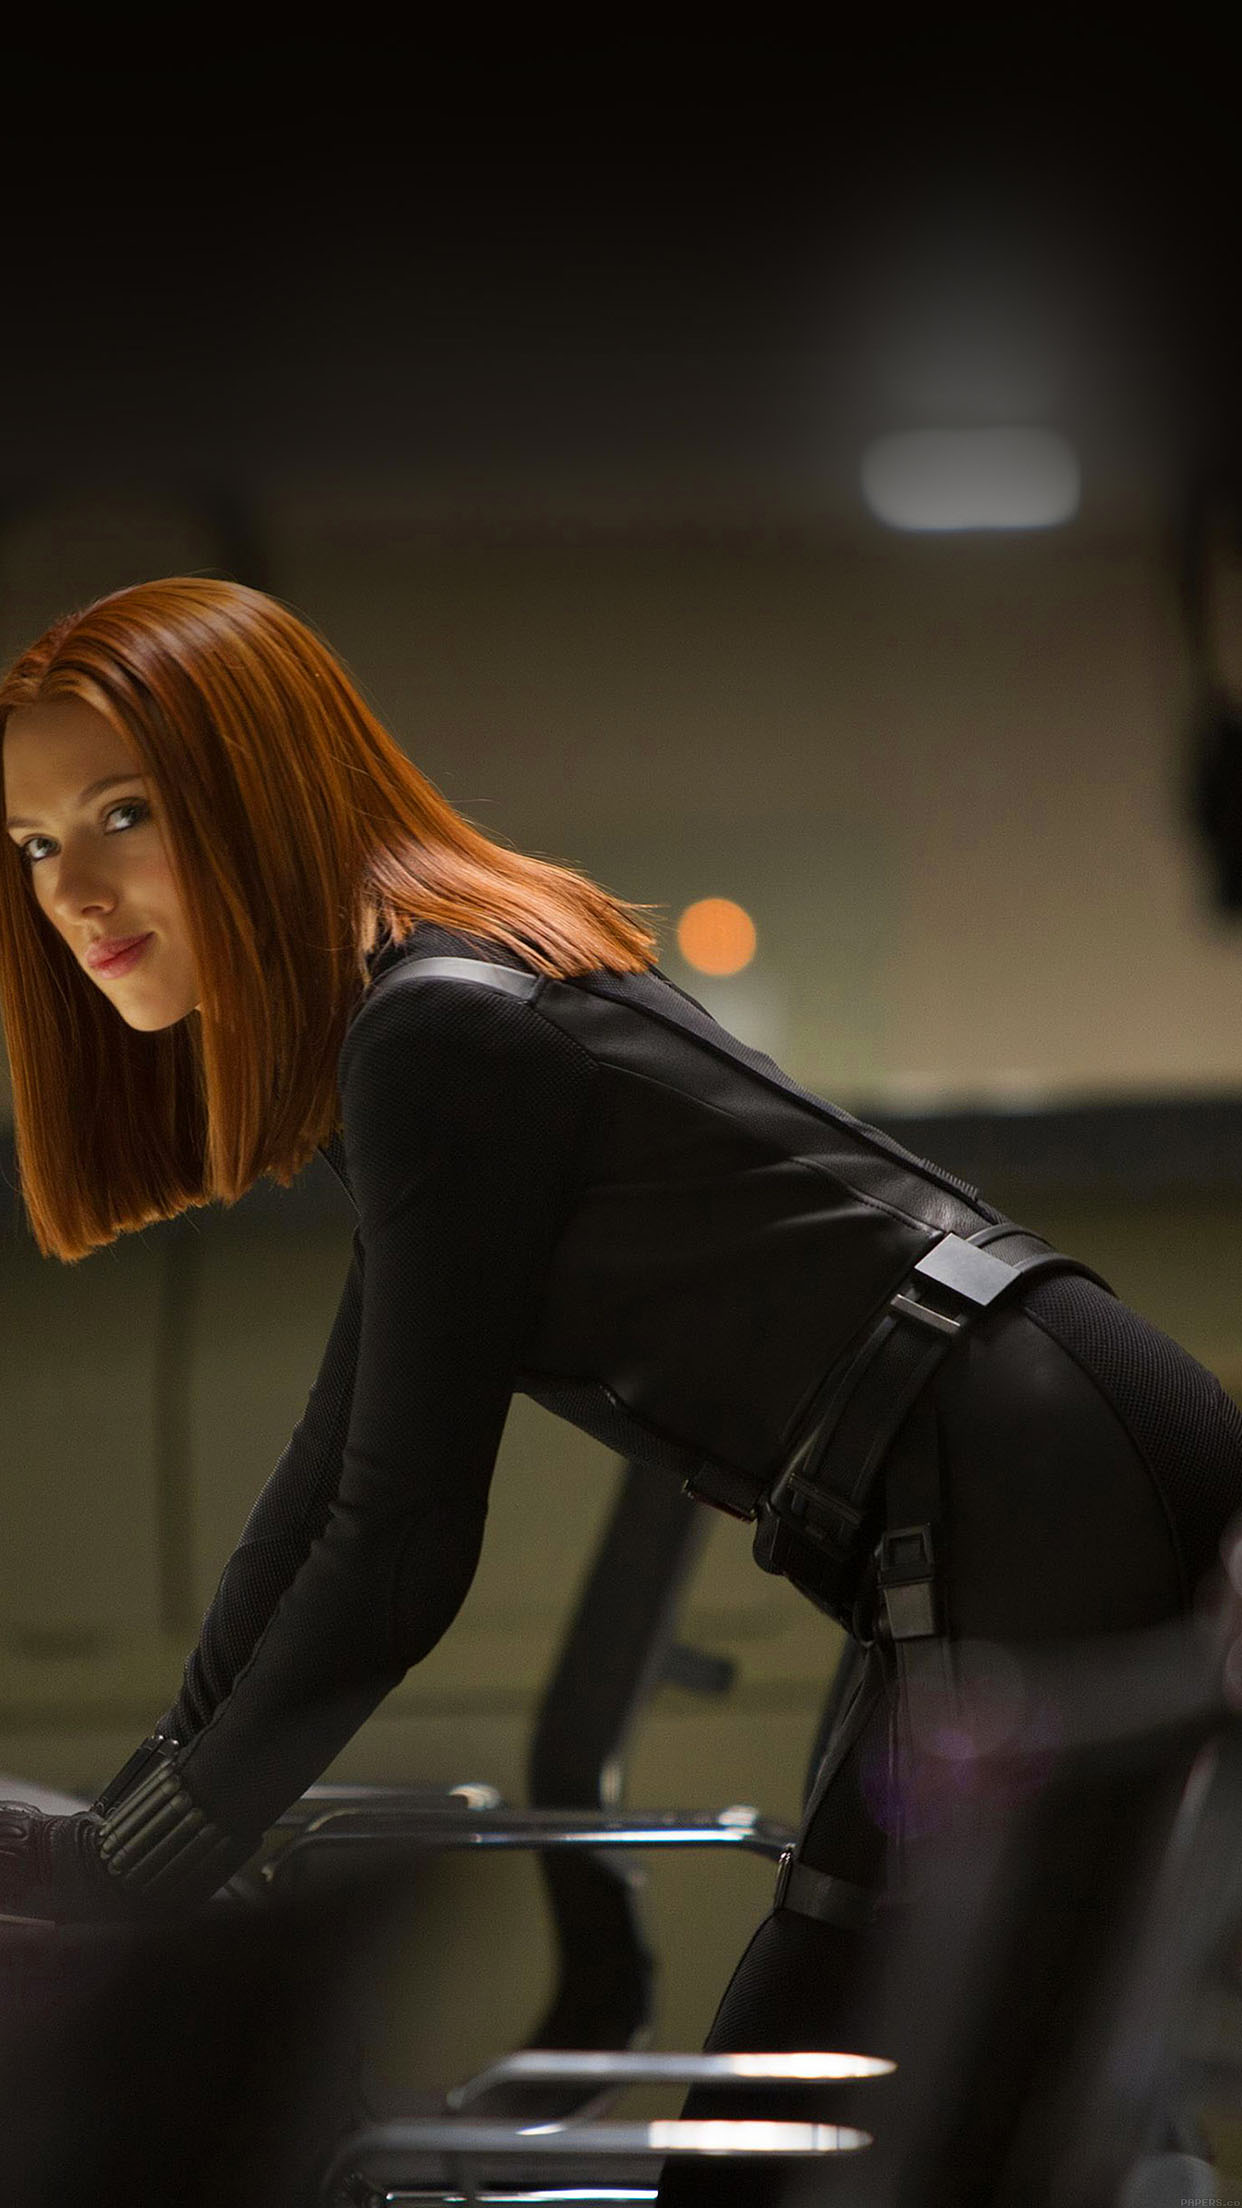 Scarlett johansson black widow wallpaper - photo#25